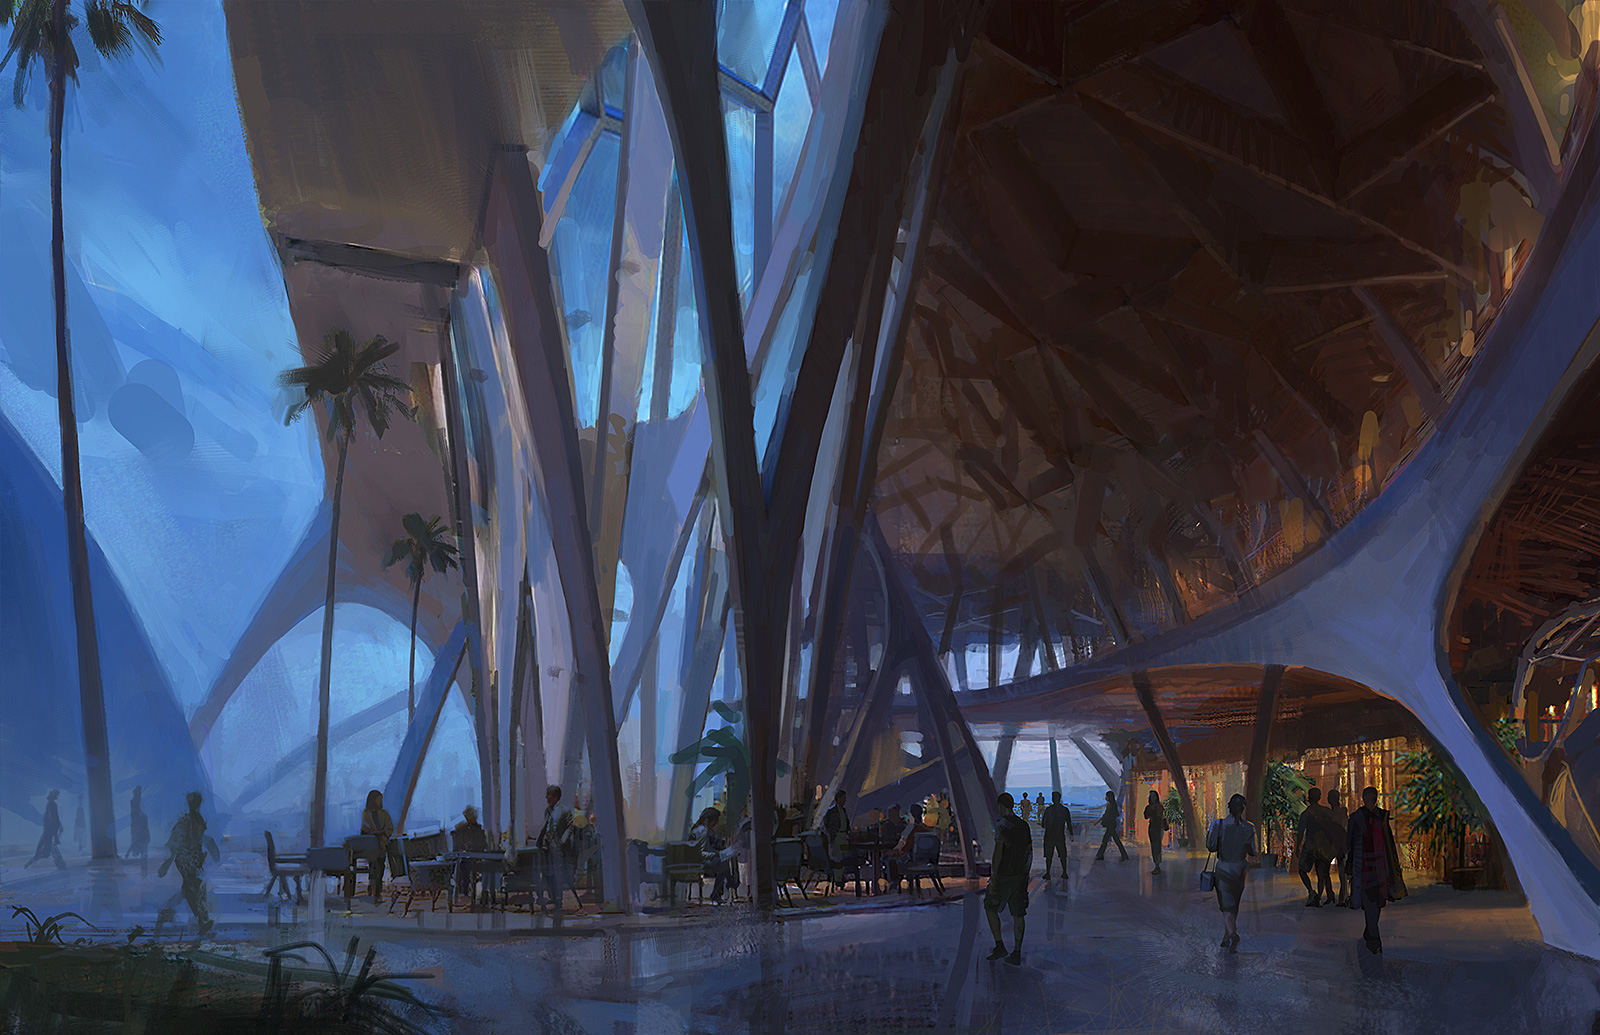 Futuristic Outdoor Plaza